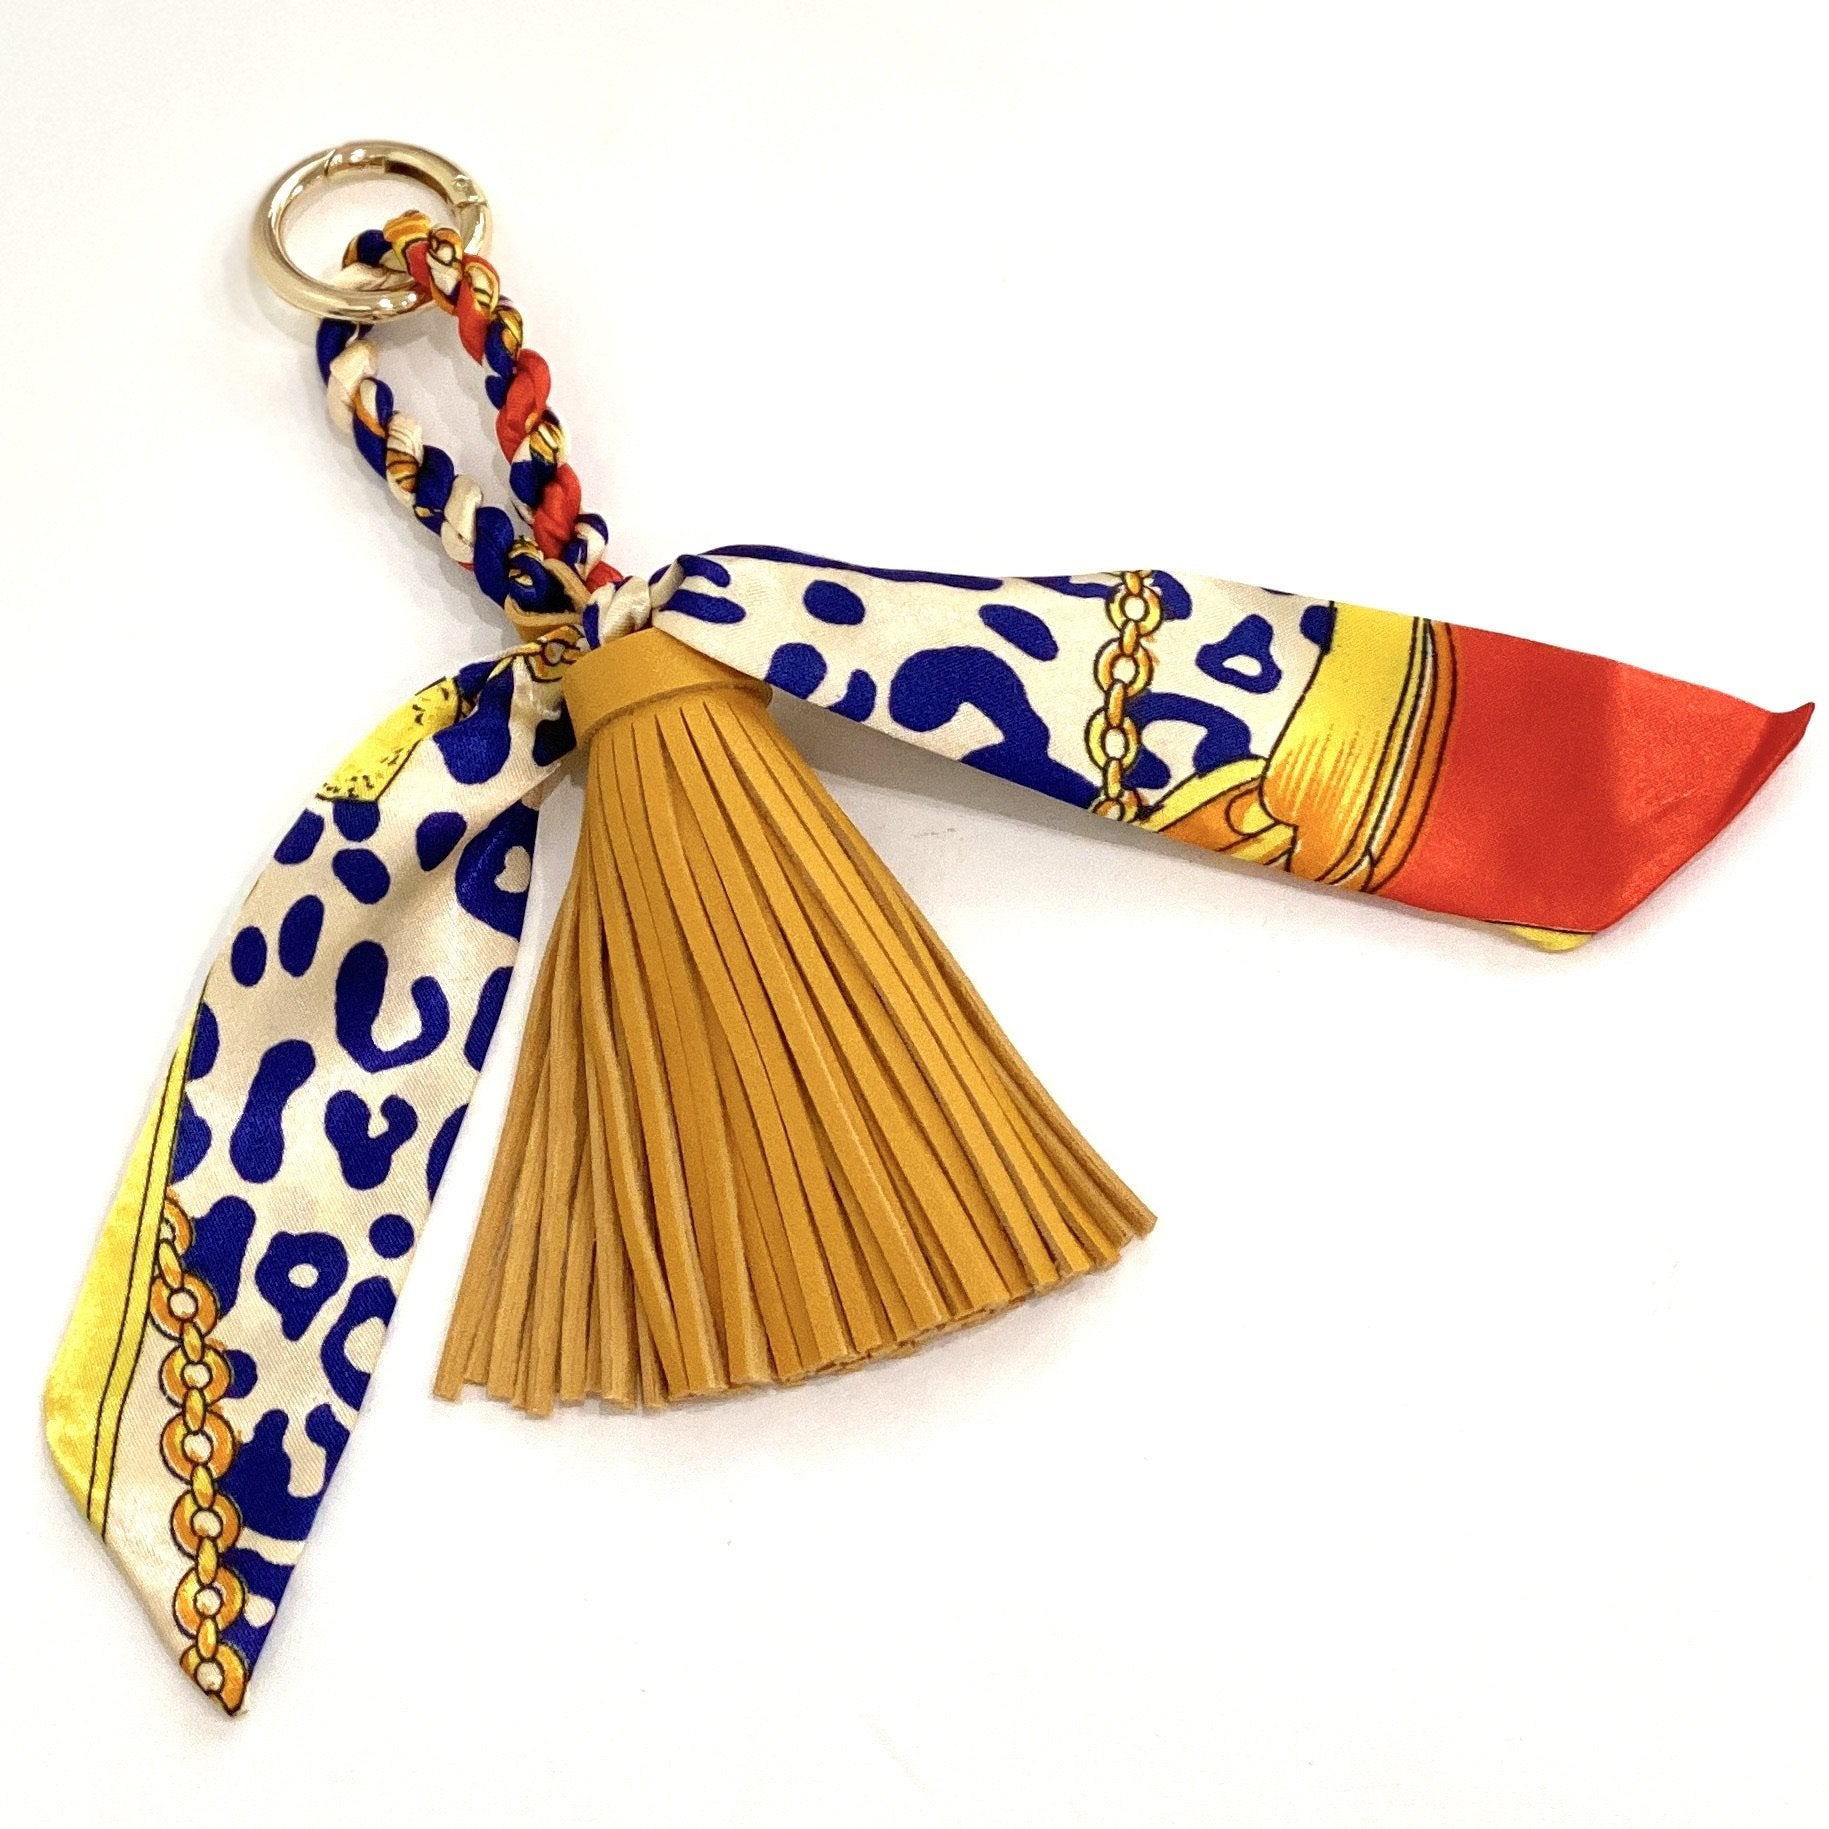 The Tassle Scarf Charm in Mustard